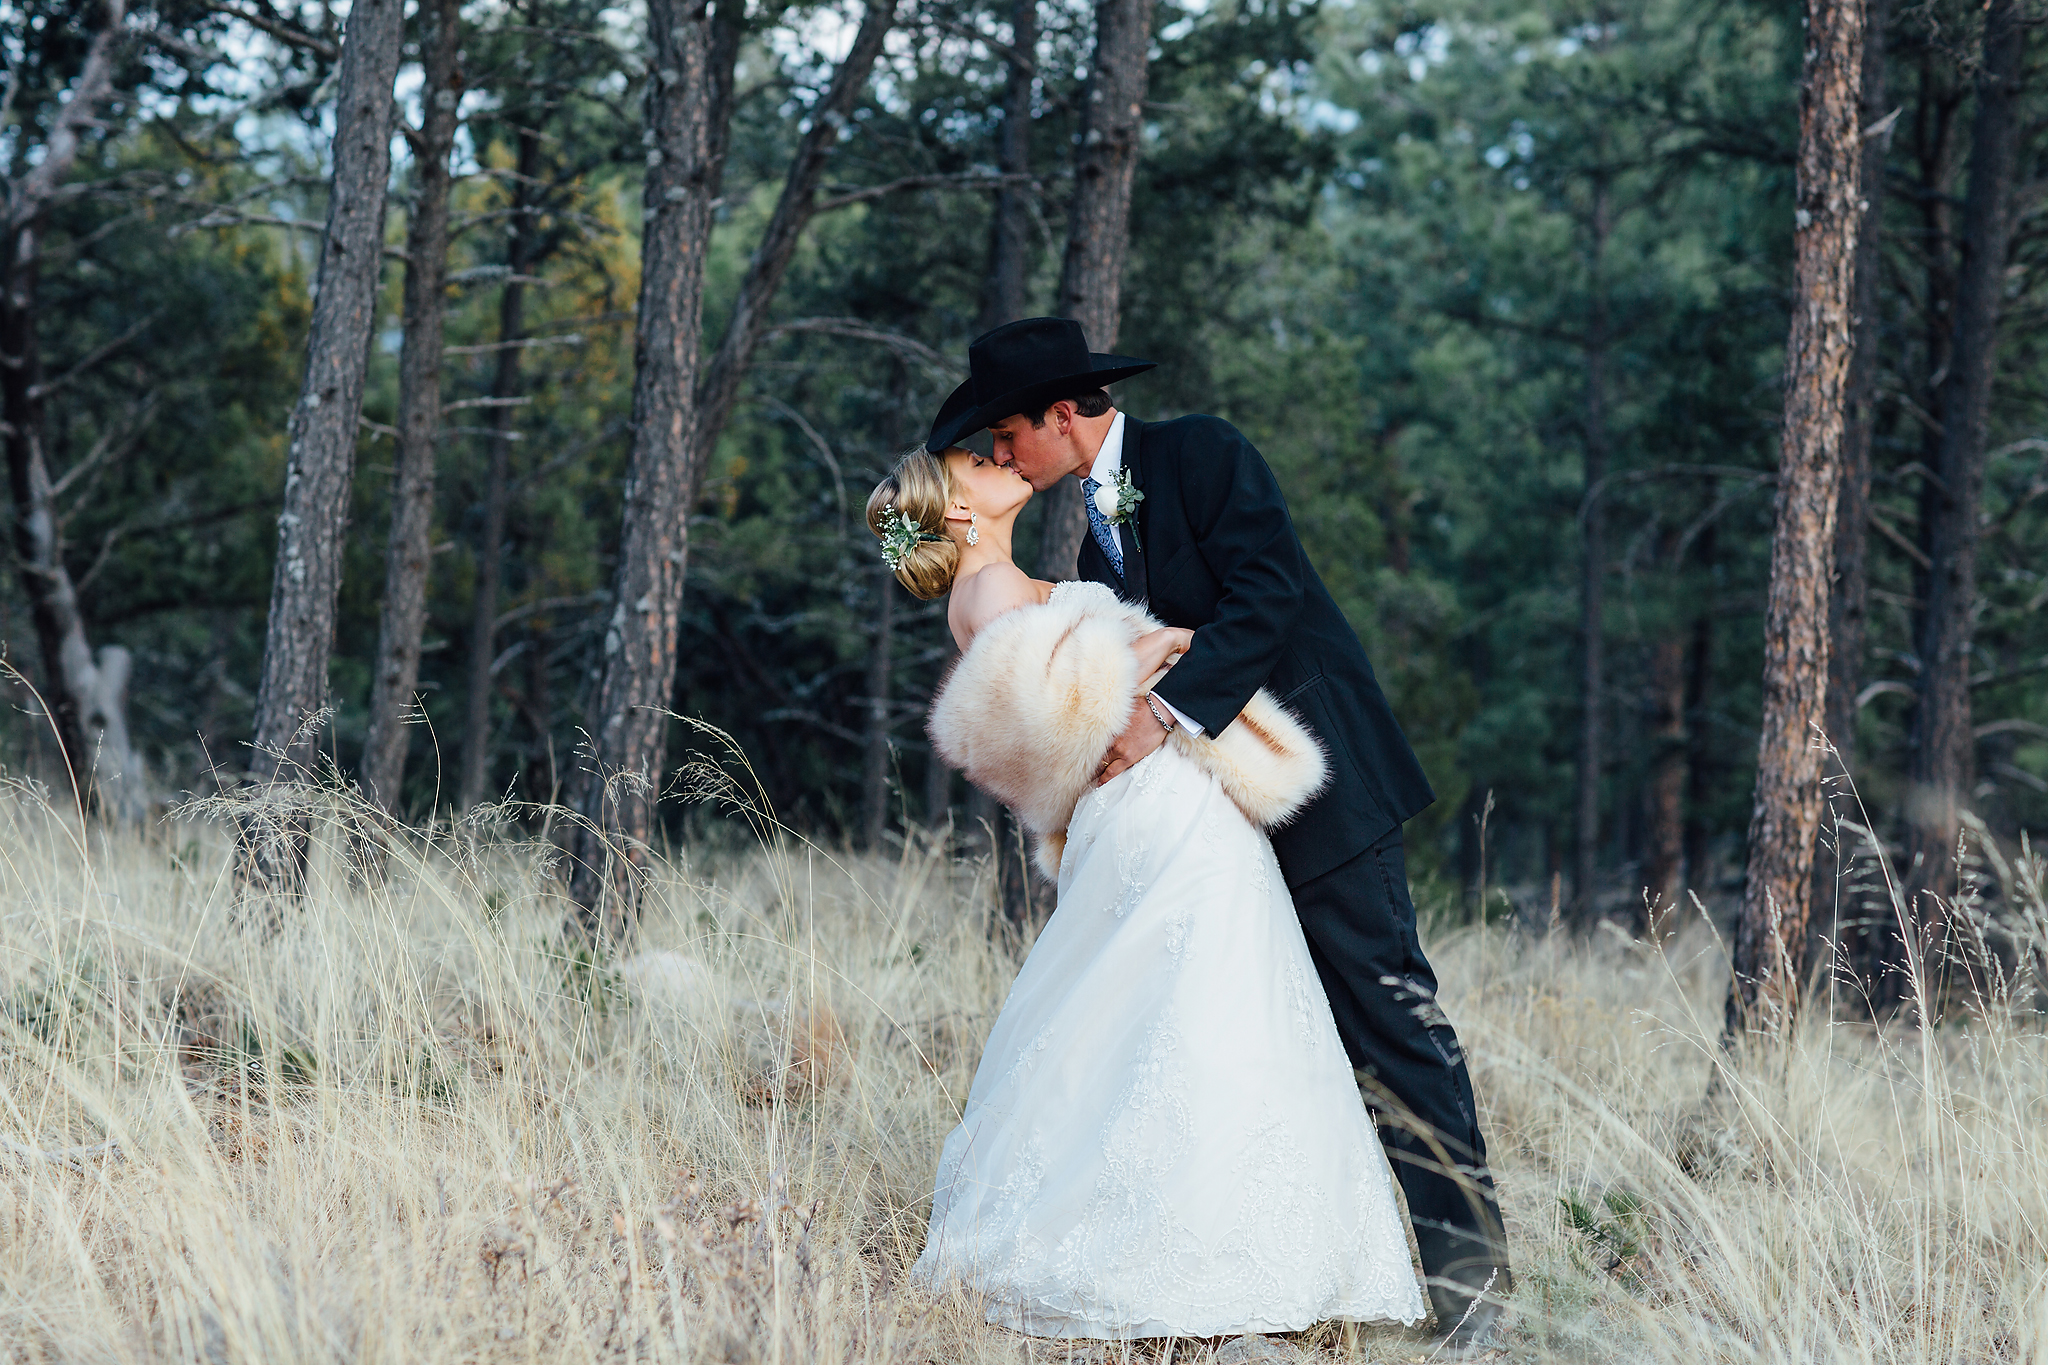 taylord-photography-las-cruces-weddings-009.jpg